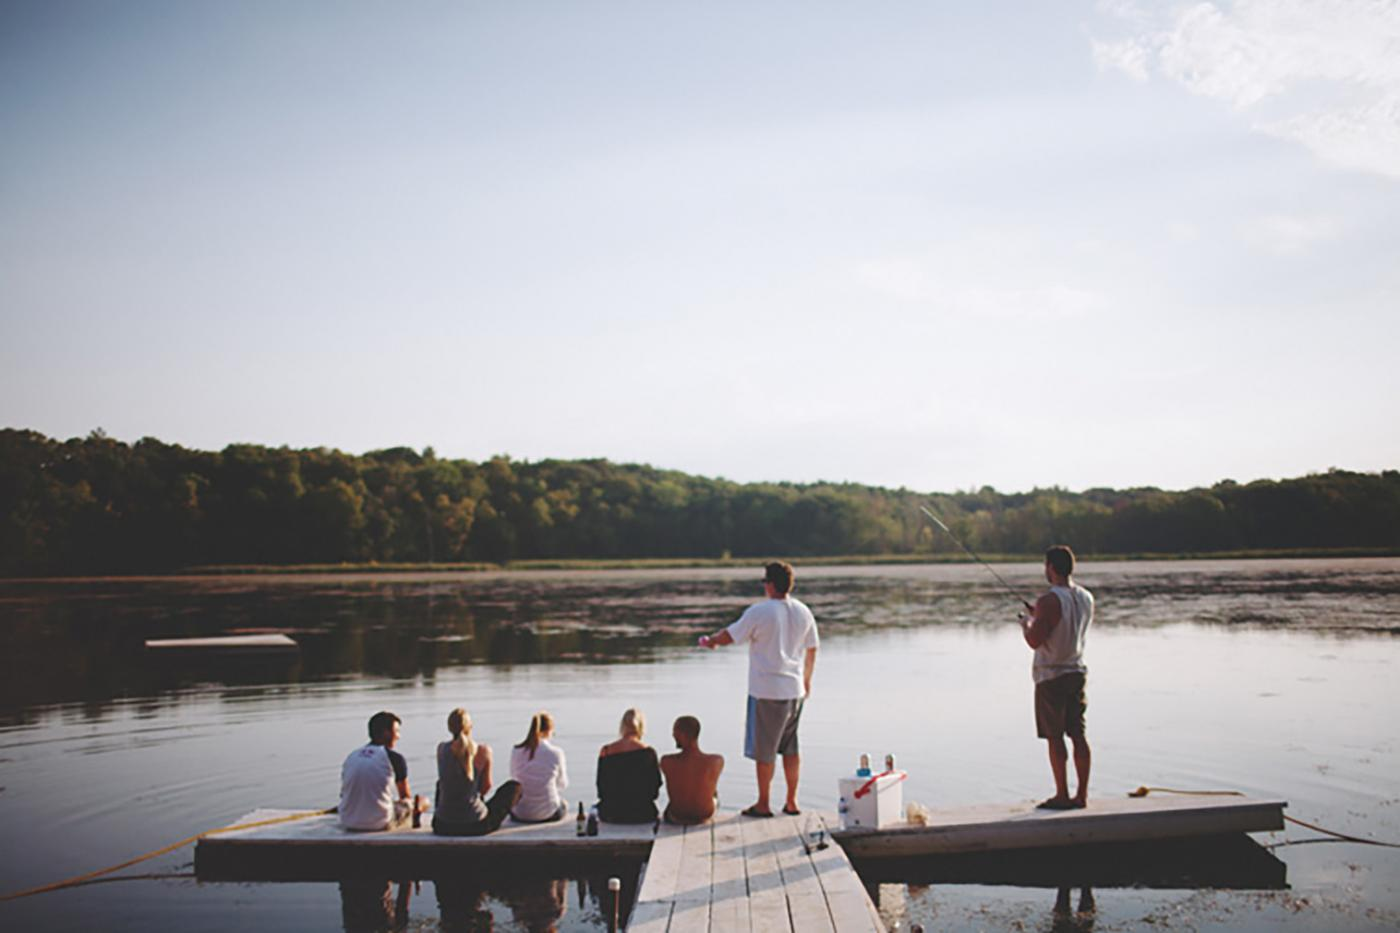 Get together with your family and friends at Camp Wandawega this summer.